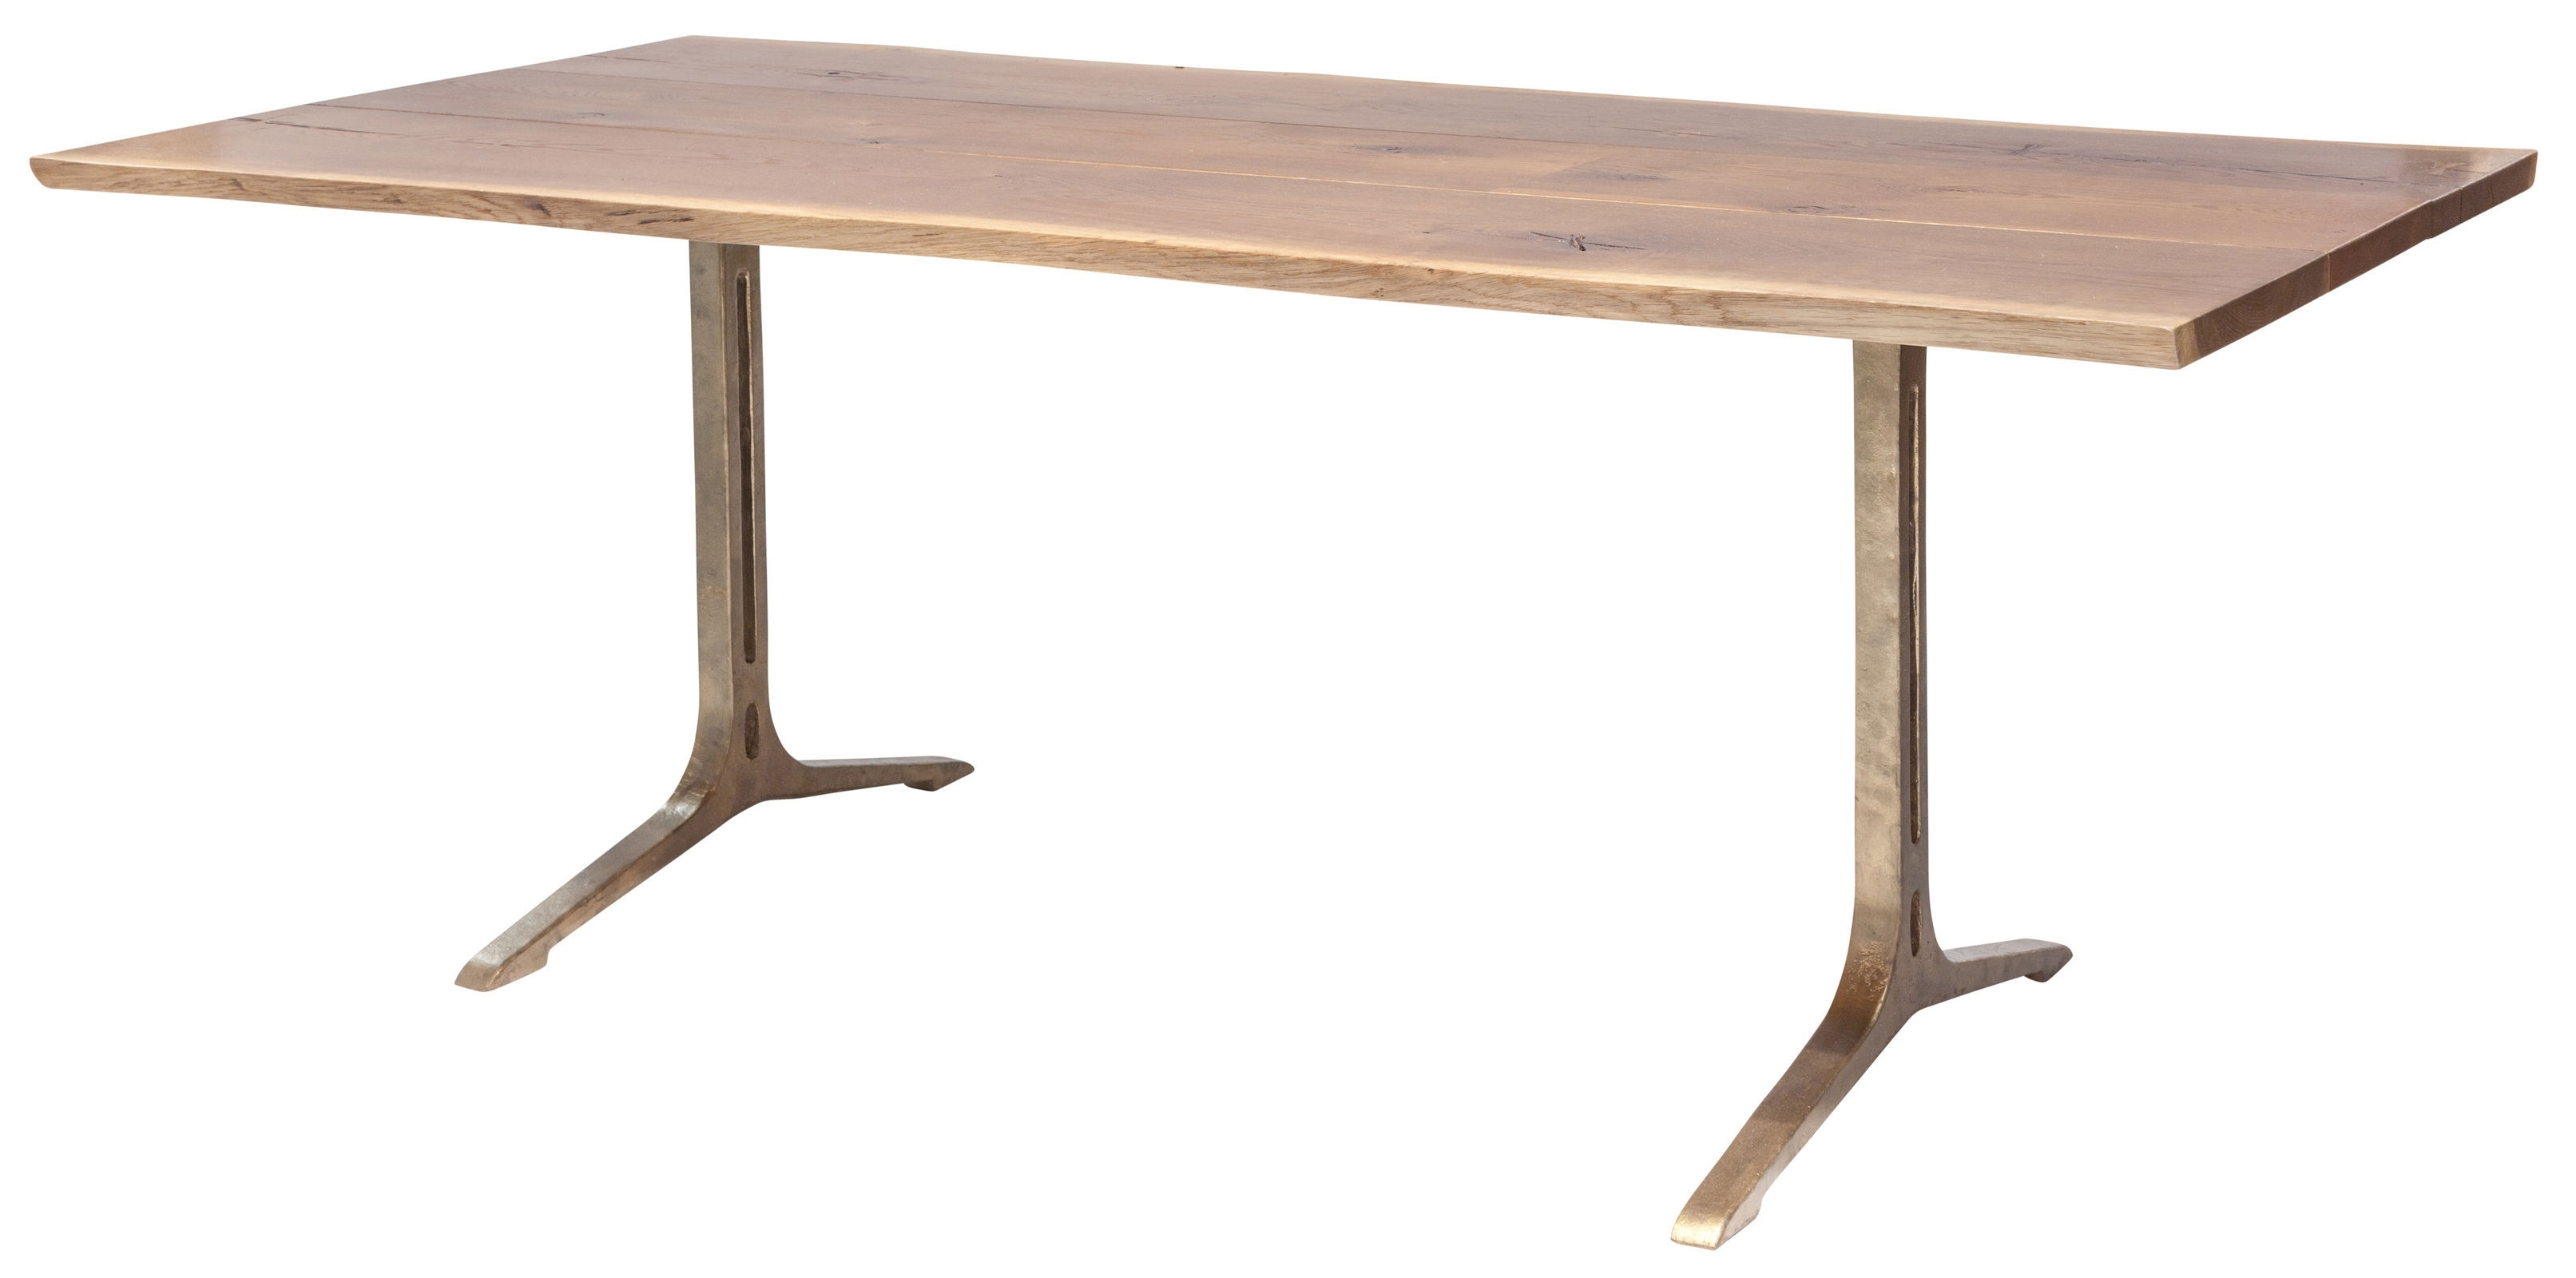 Samara 78 Inch Dining Table In Smoked Oak And Bronze Cast Iron Legs Regarding Latest Portland 78 Inch Dining Tables (Image 16 of 20)